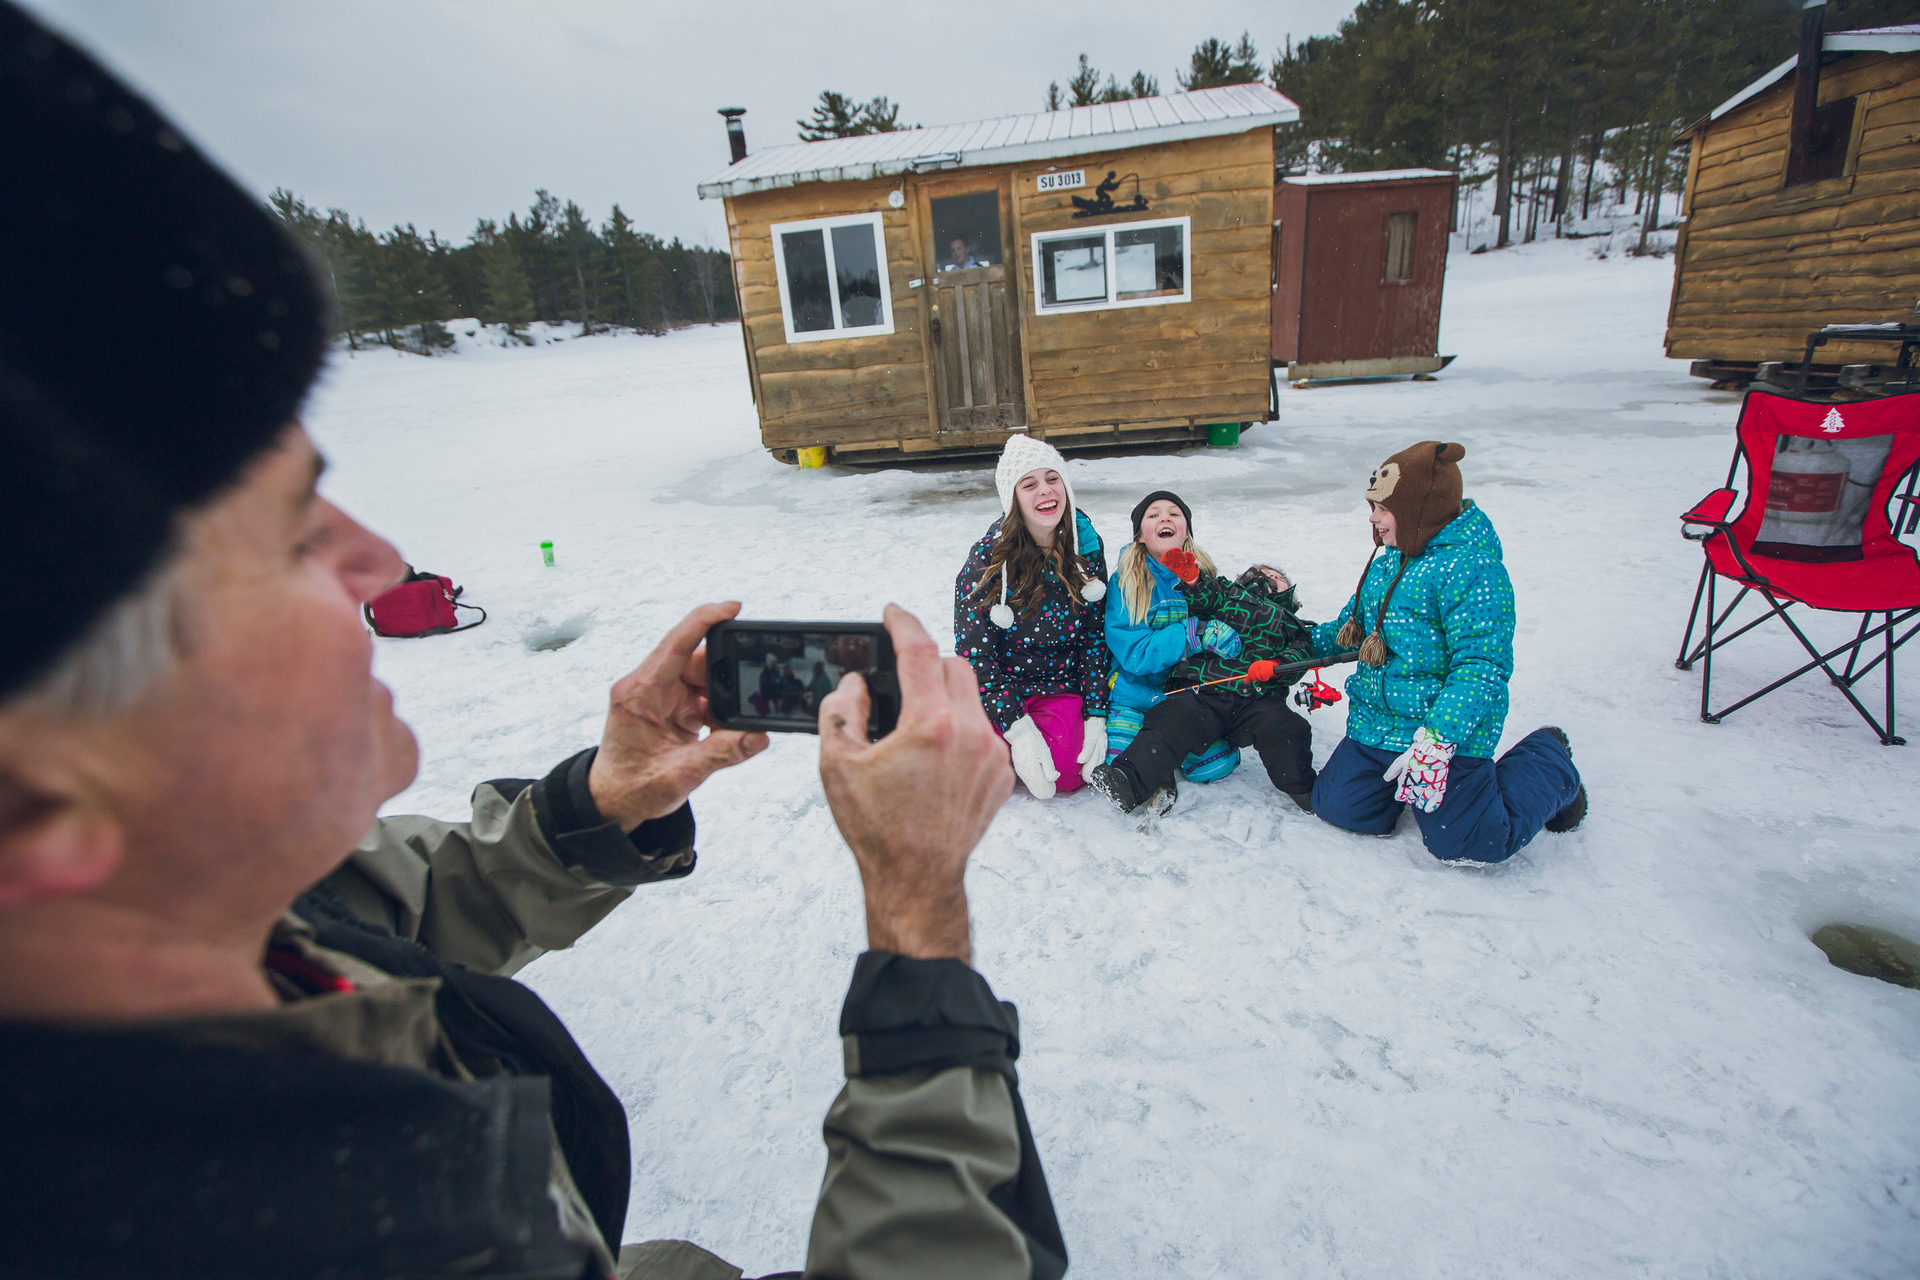 Family Day – Get Outside and Enjoy Winter